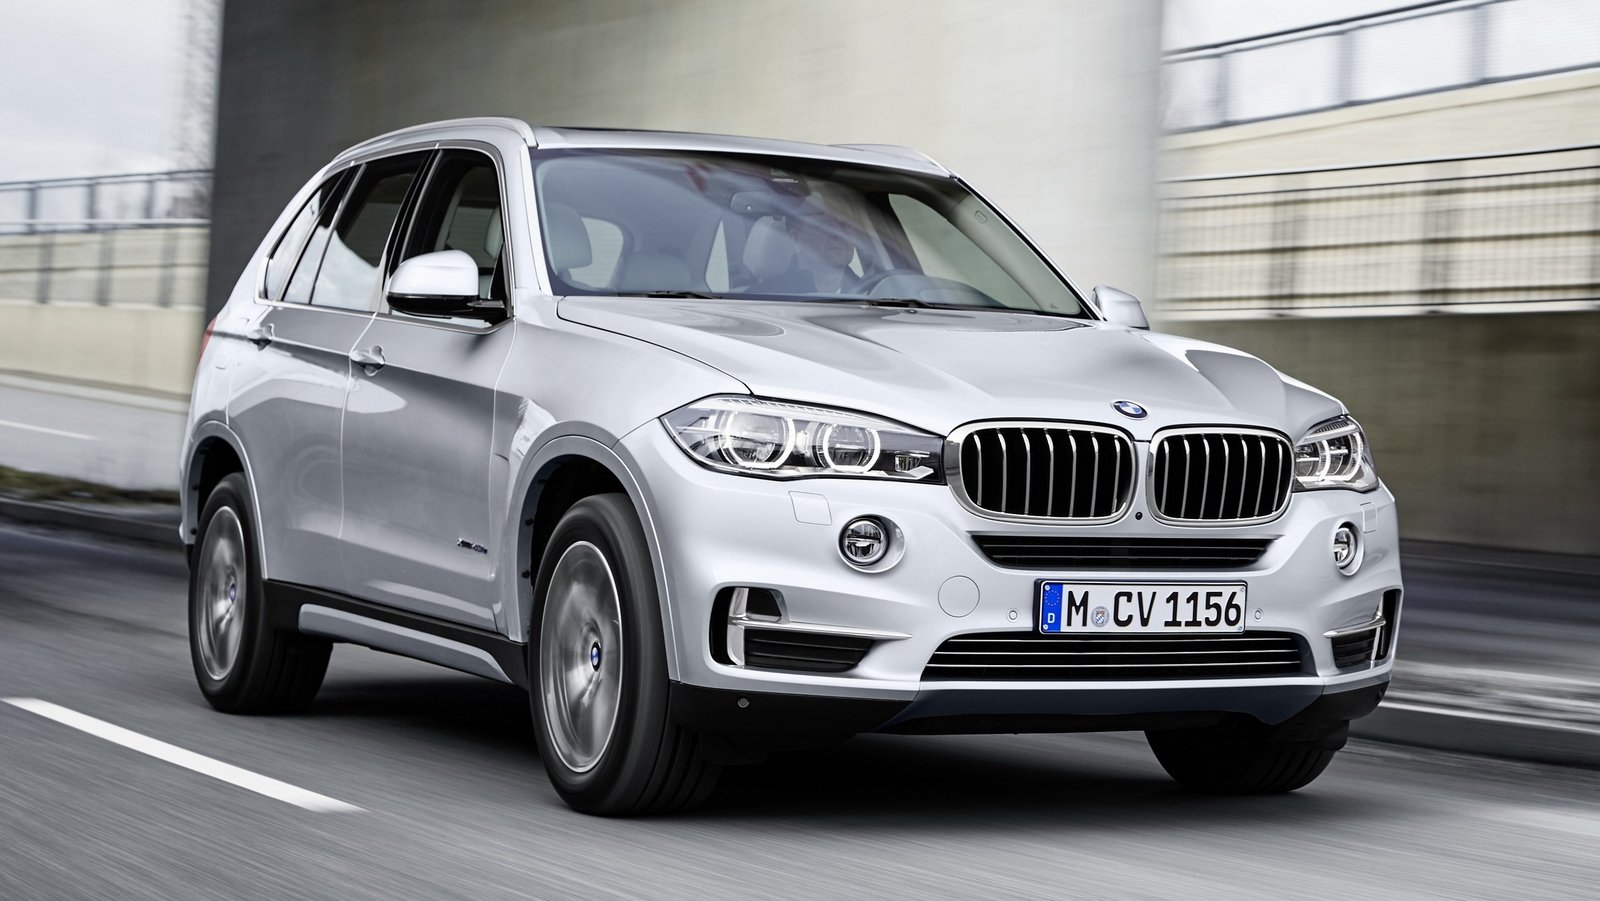 2016 bmw x5 xdrive40e picture 621534 car review top speed. Black Bedroom Furniture Sets. Home Design Ideas